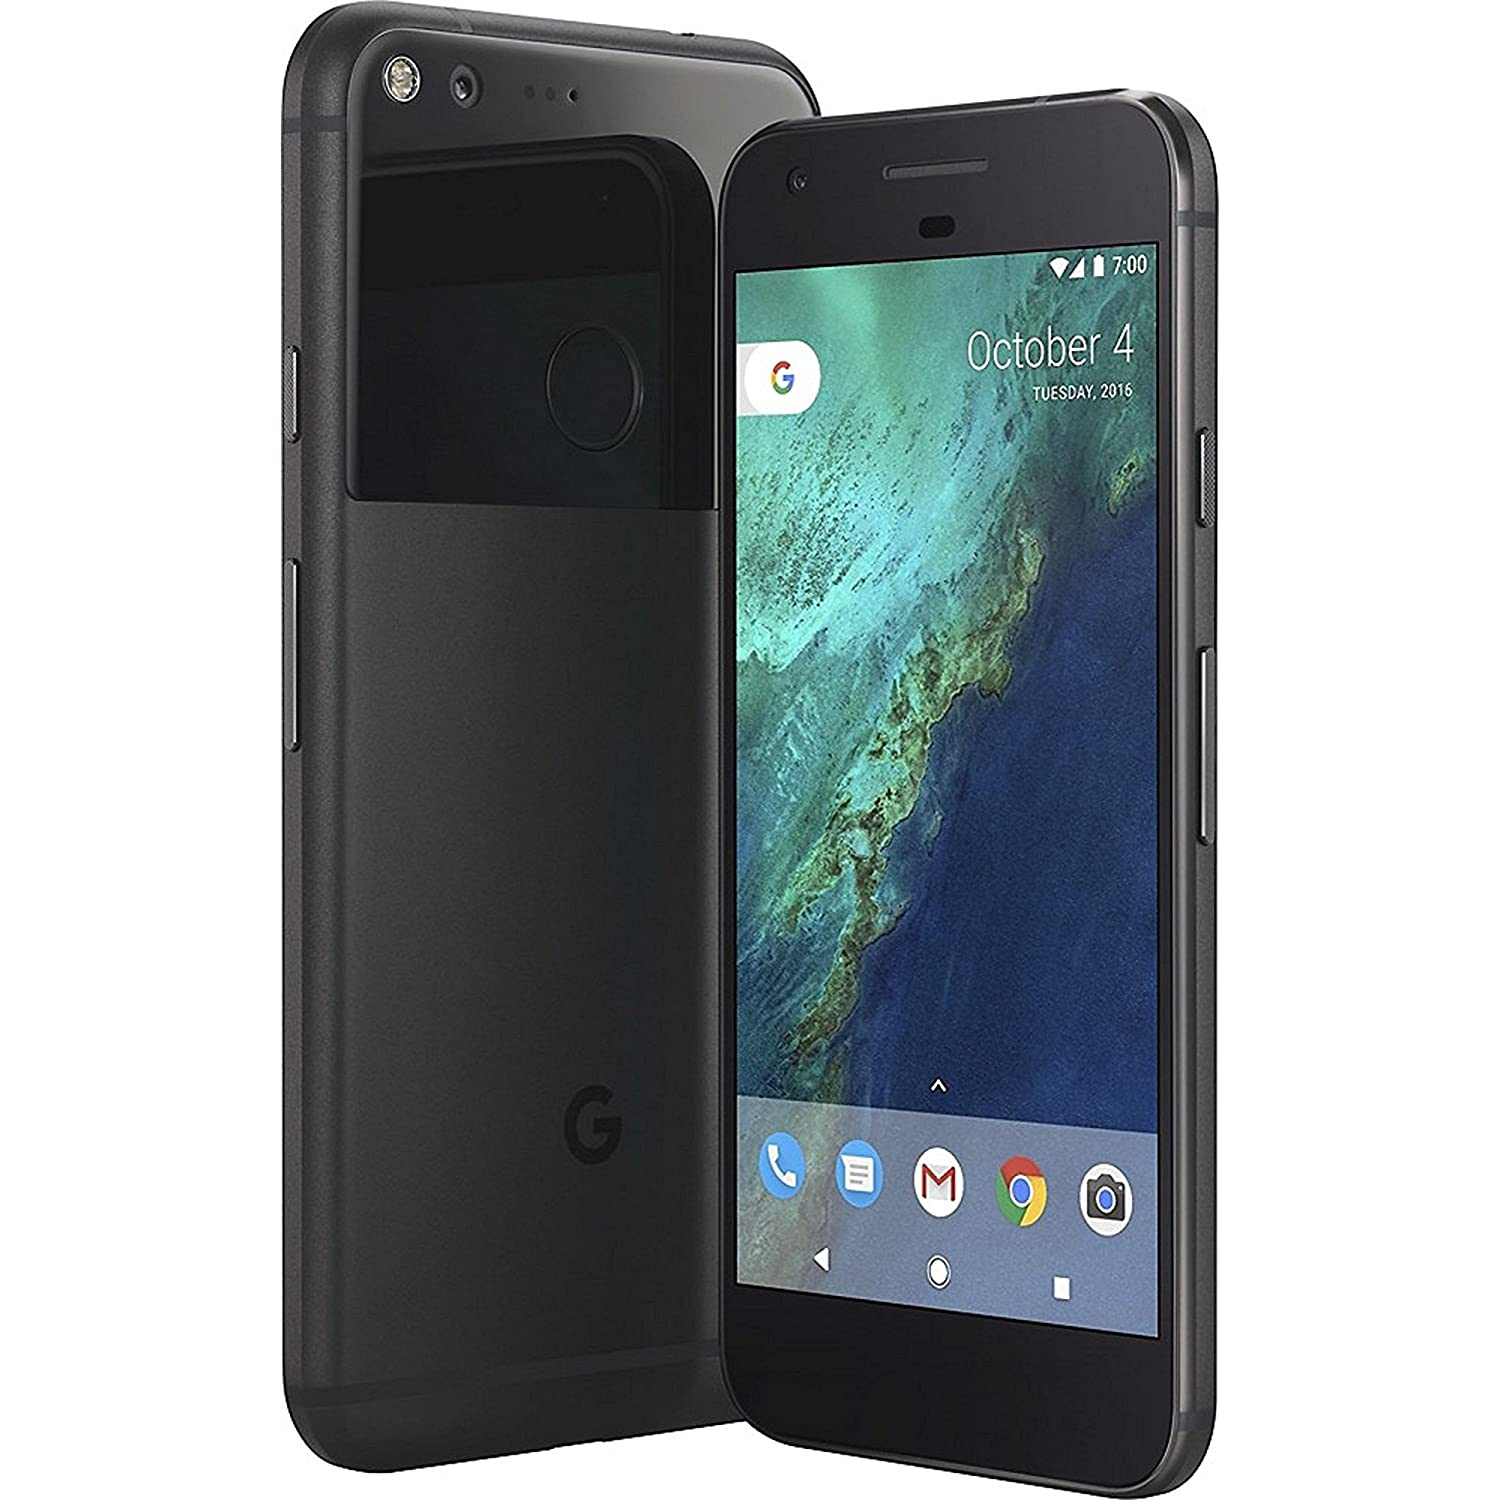 Google Pixel 32GB 12MP SIM-Free Smartphone in Black - Handset Only